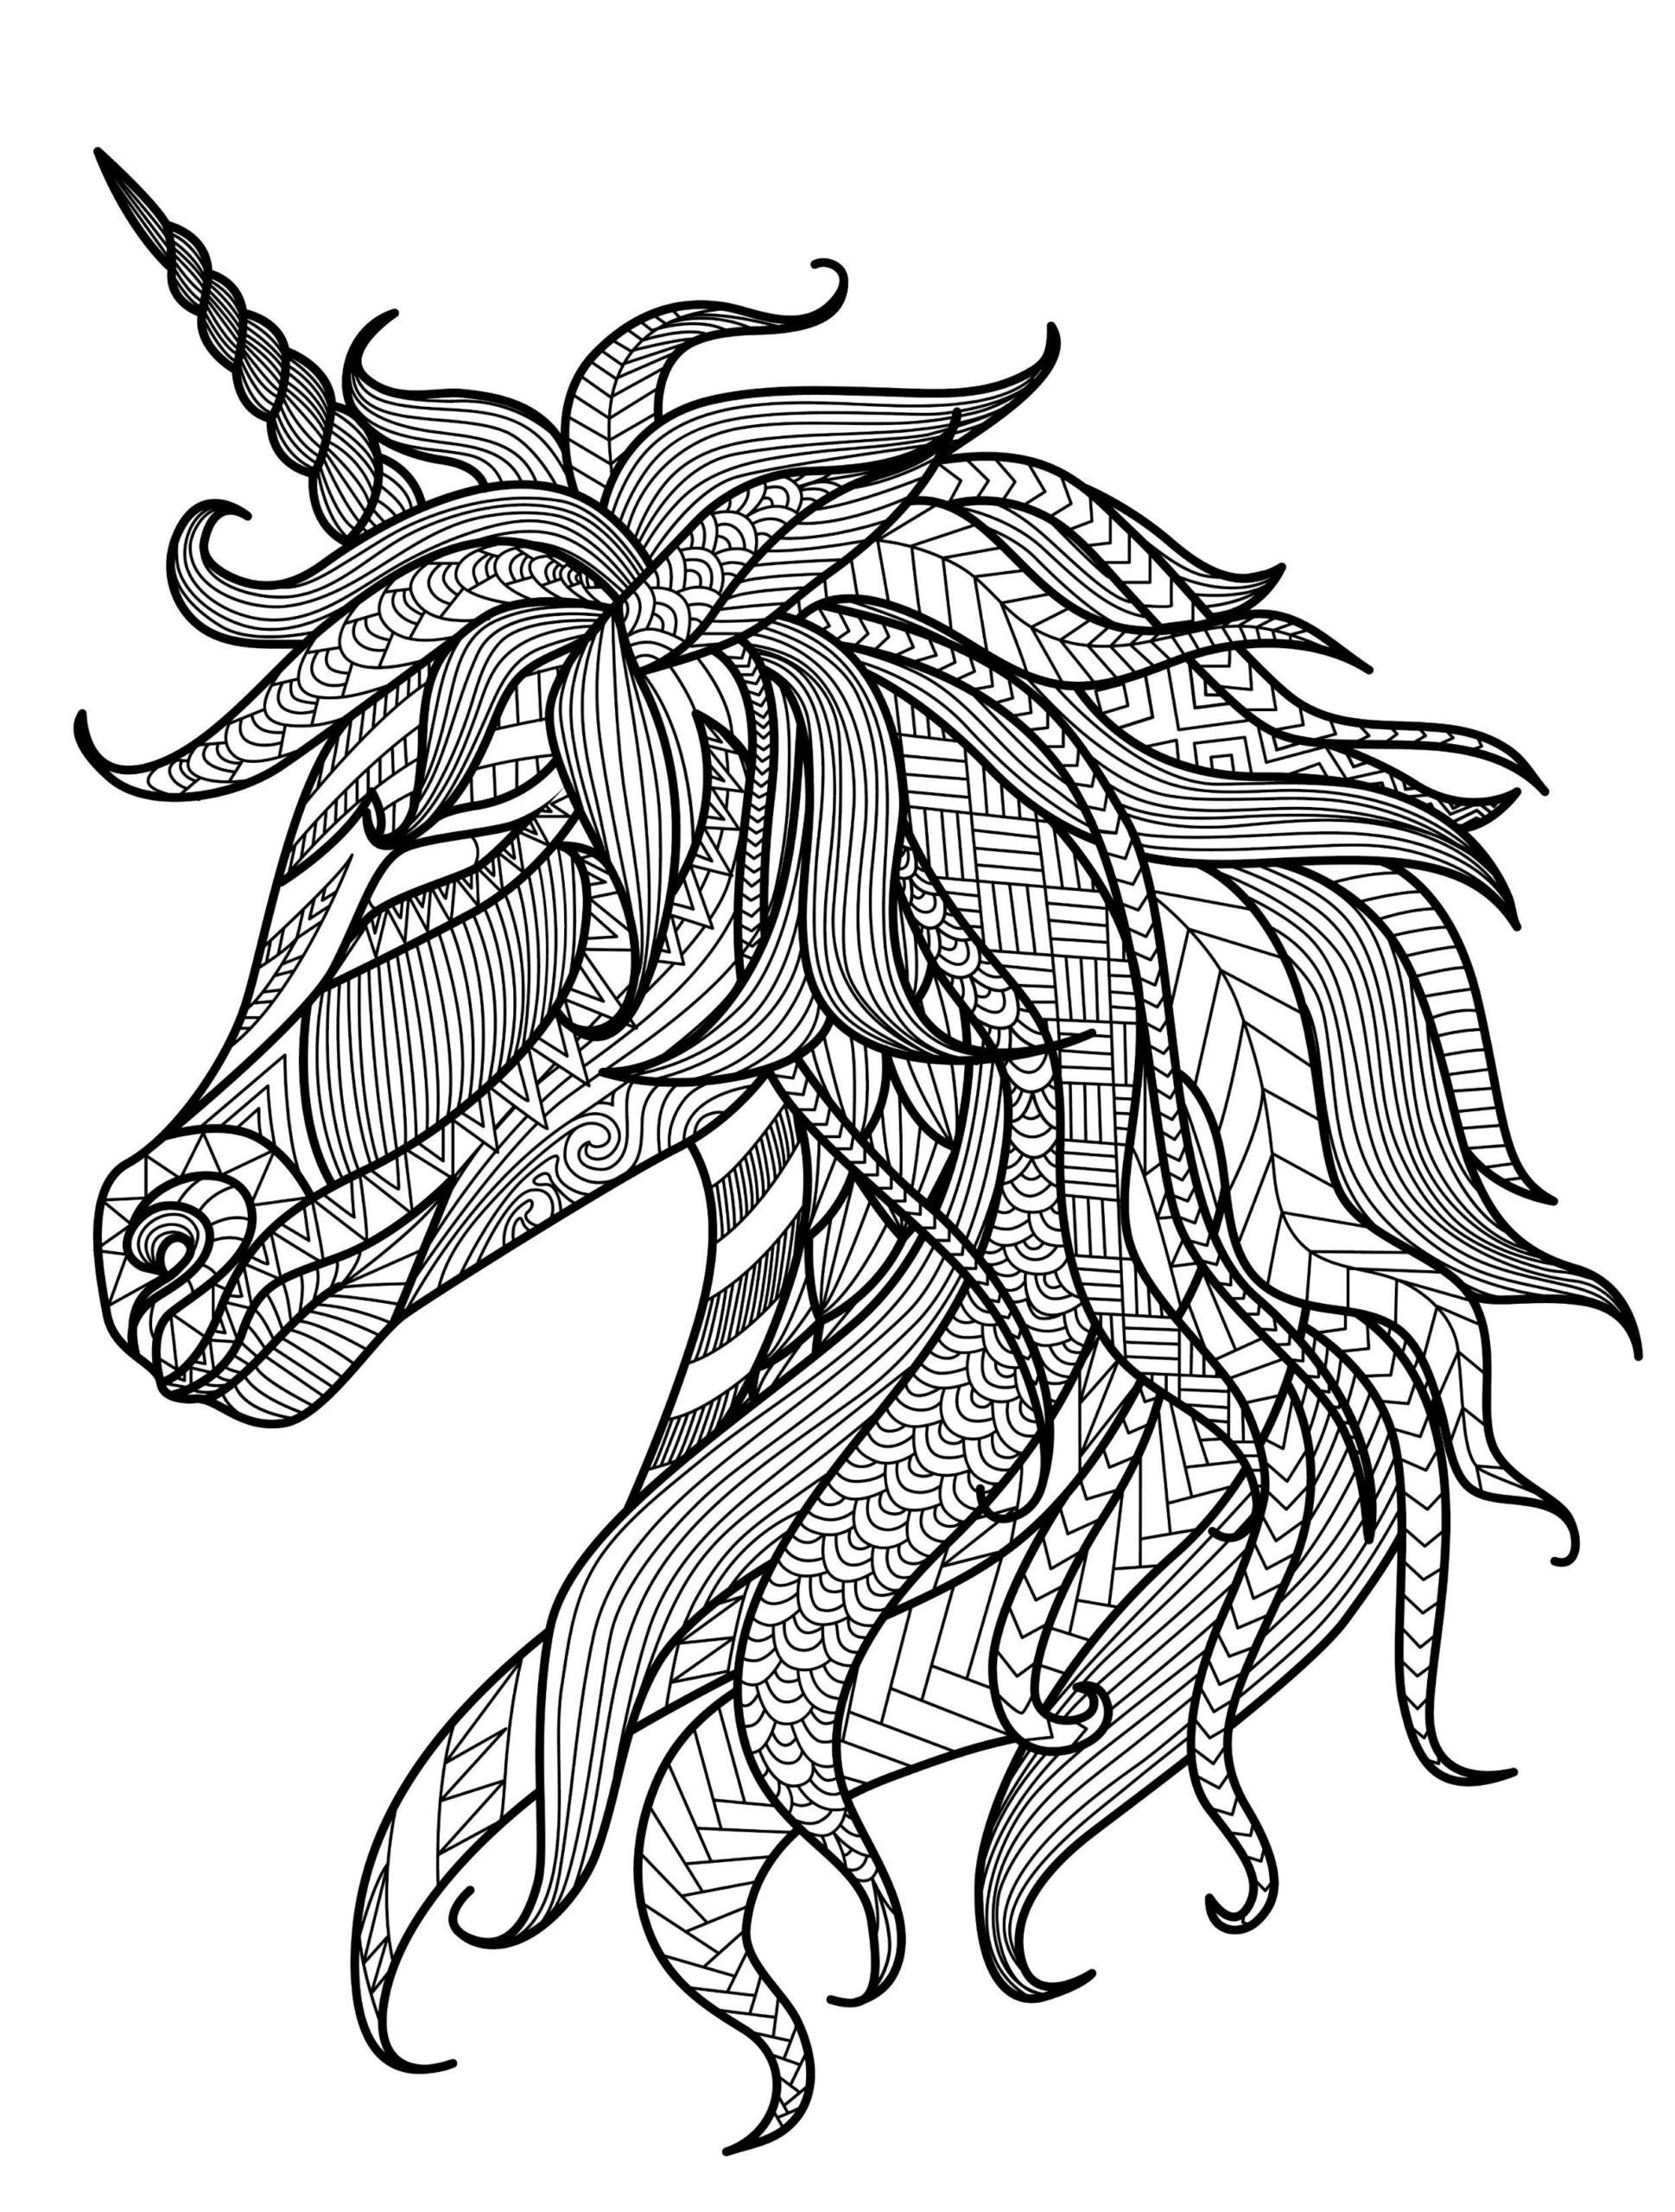 Pin On Coloring Books Image Ideas